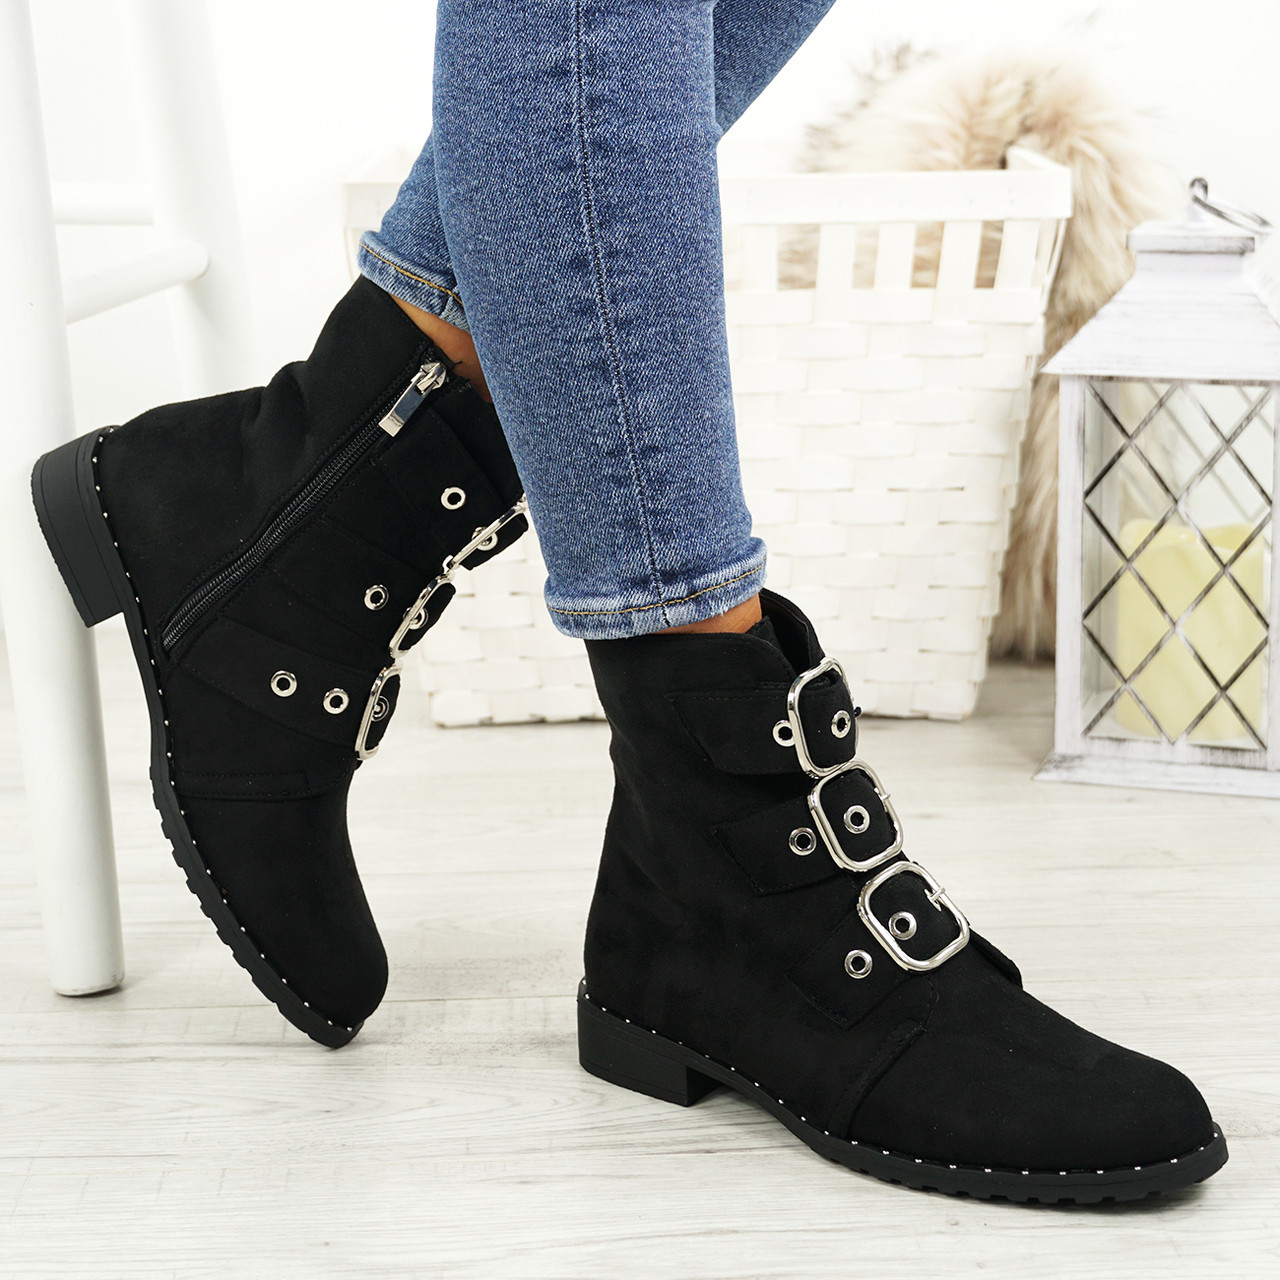 892a3e483a1bb Ladies Womens Biker Ankle Boots Zip Studded Low Heel Comfy Shoes Sizes